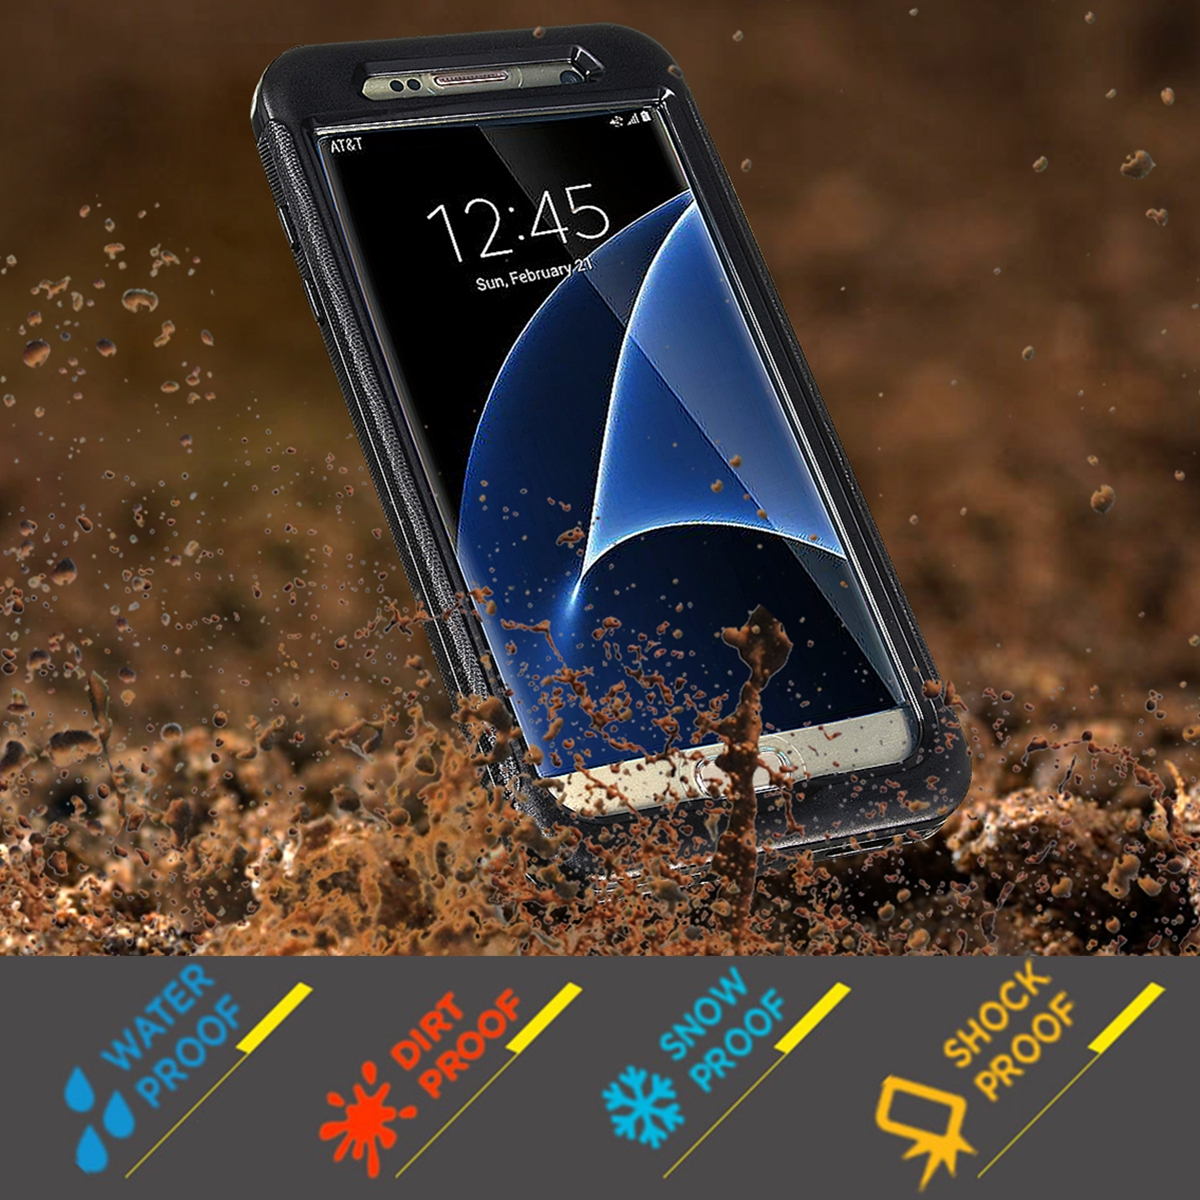 Galaxy S7/Edge Full Cover IP68 Waterproof Case Shockproof Snow Proof Underwater Up to 6 meters for Diving, Swimming